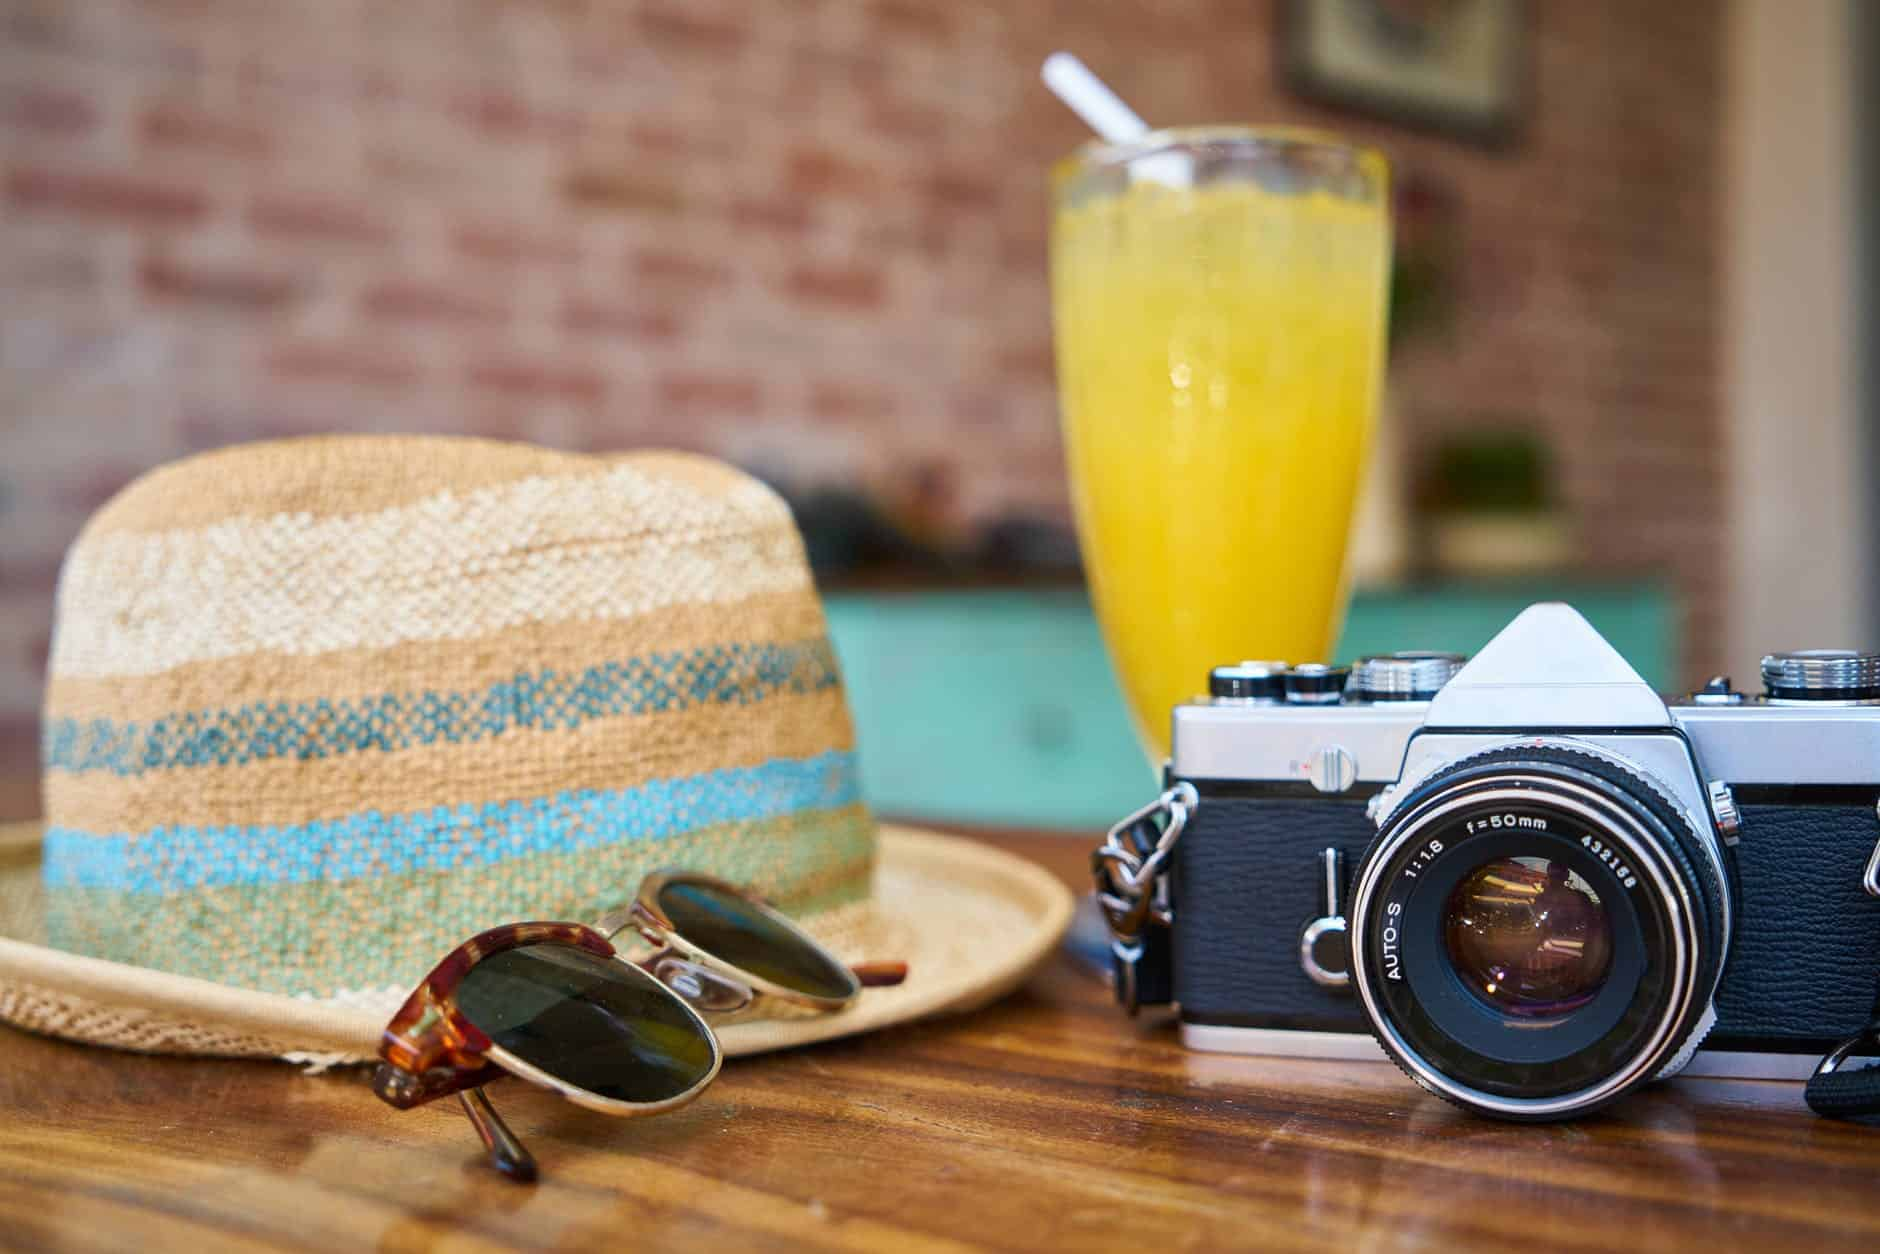 Four Suggestions To Make Your Family Holiday A Breeze